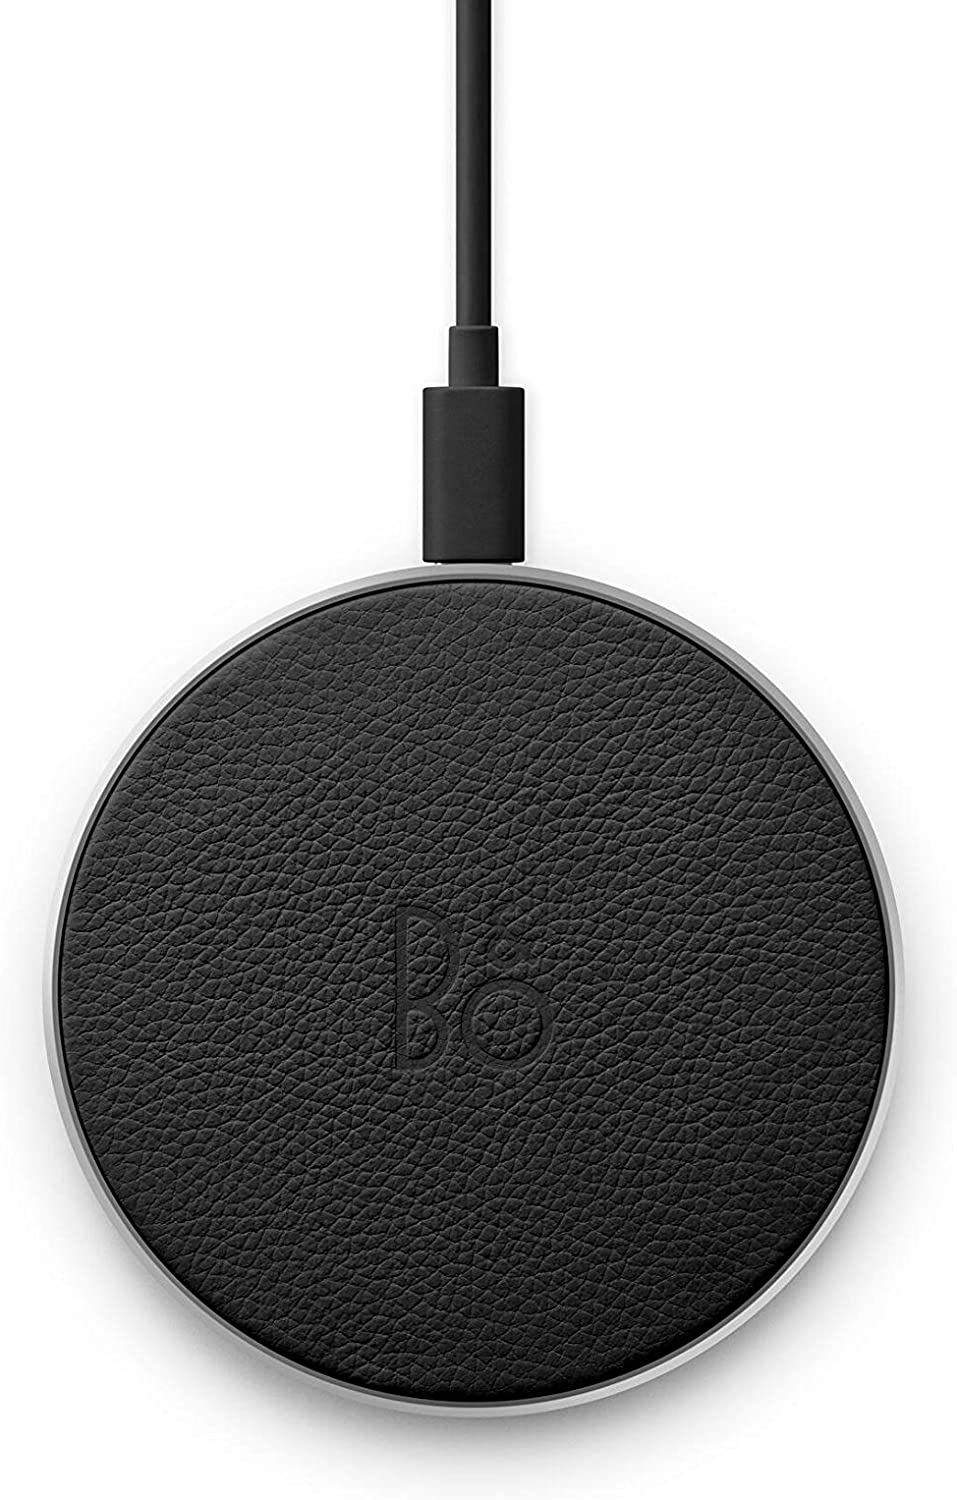 Bang & Olufsen Beoplay Charging Pad - Qi-Certified Wireless Charger - Fast Charging Pad, Black